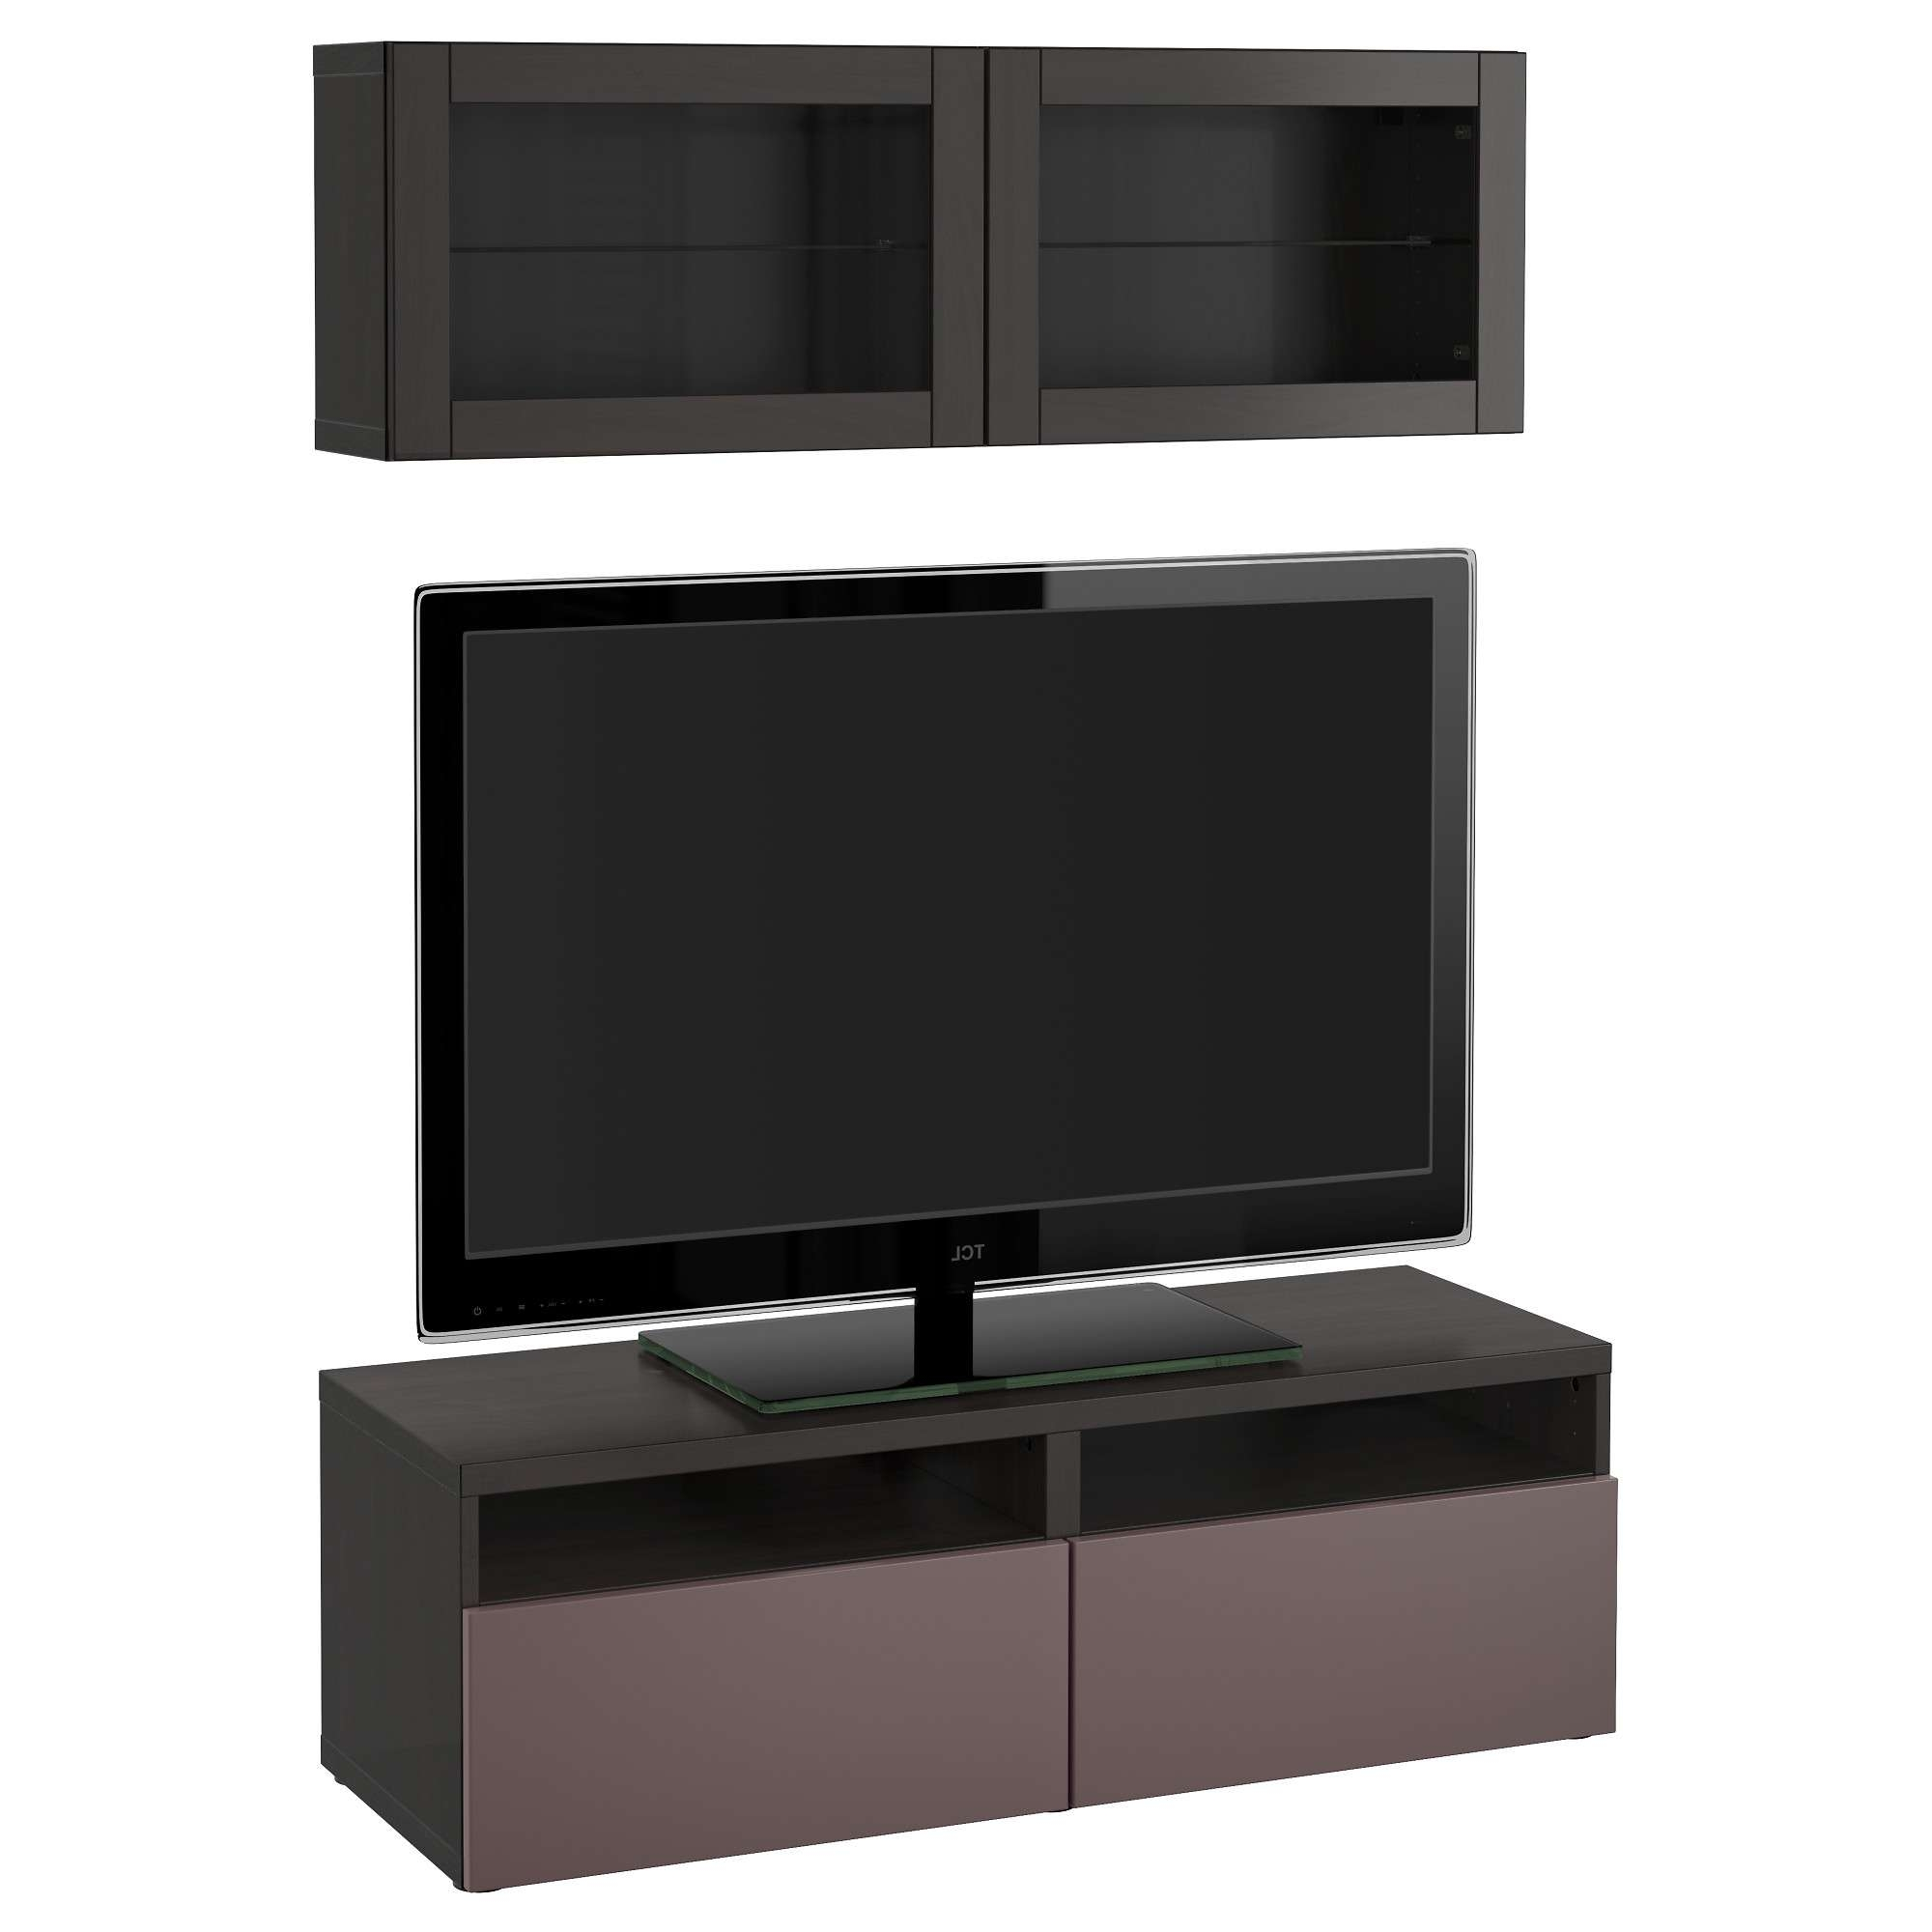 explore gallery of wall mounted tv cabinets ikea (showing 3 of 20